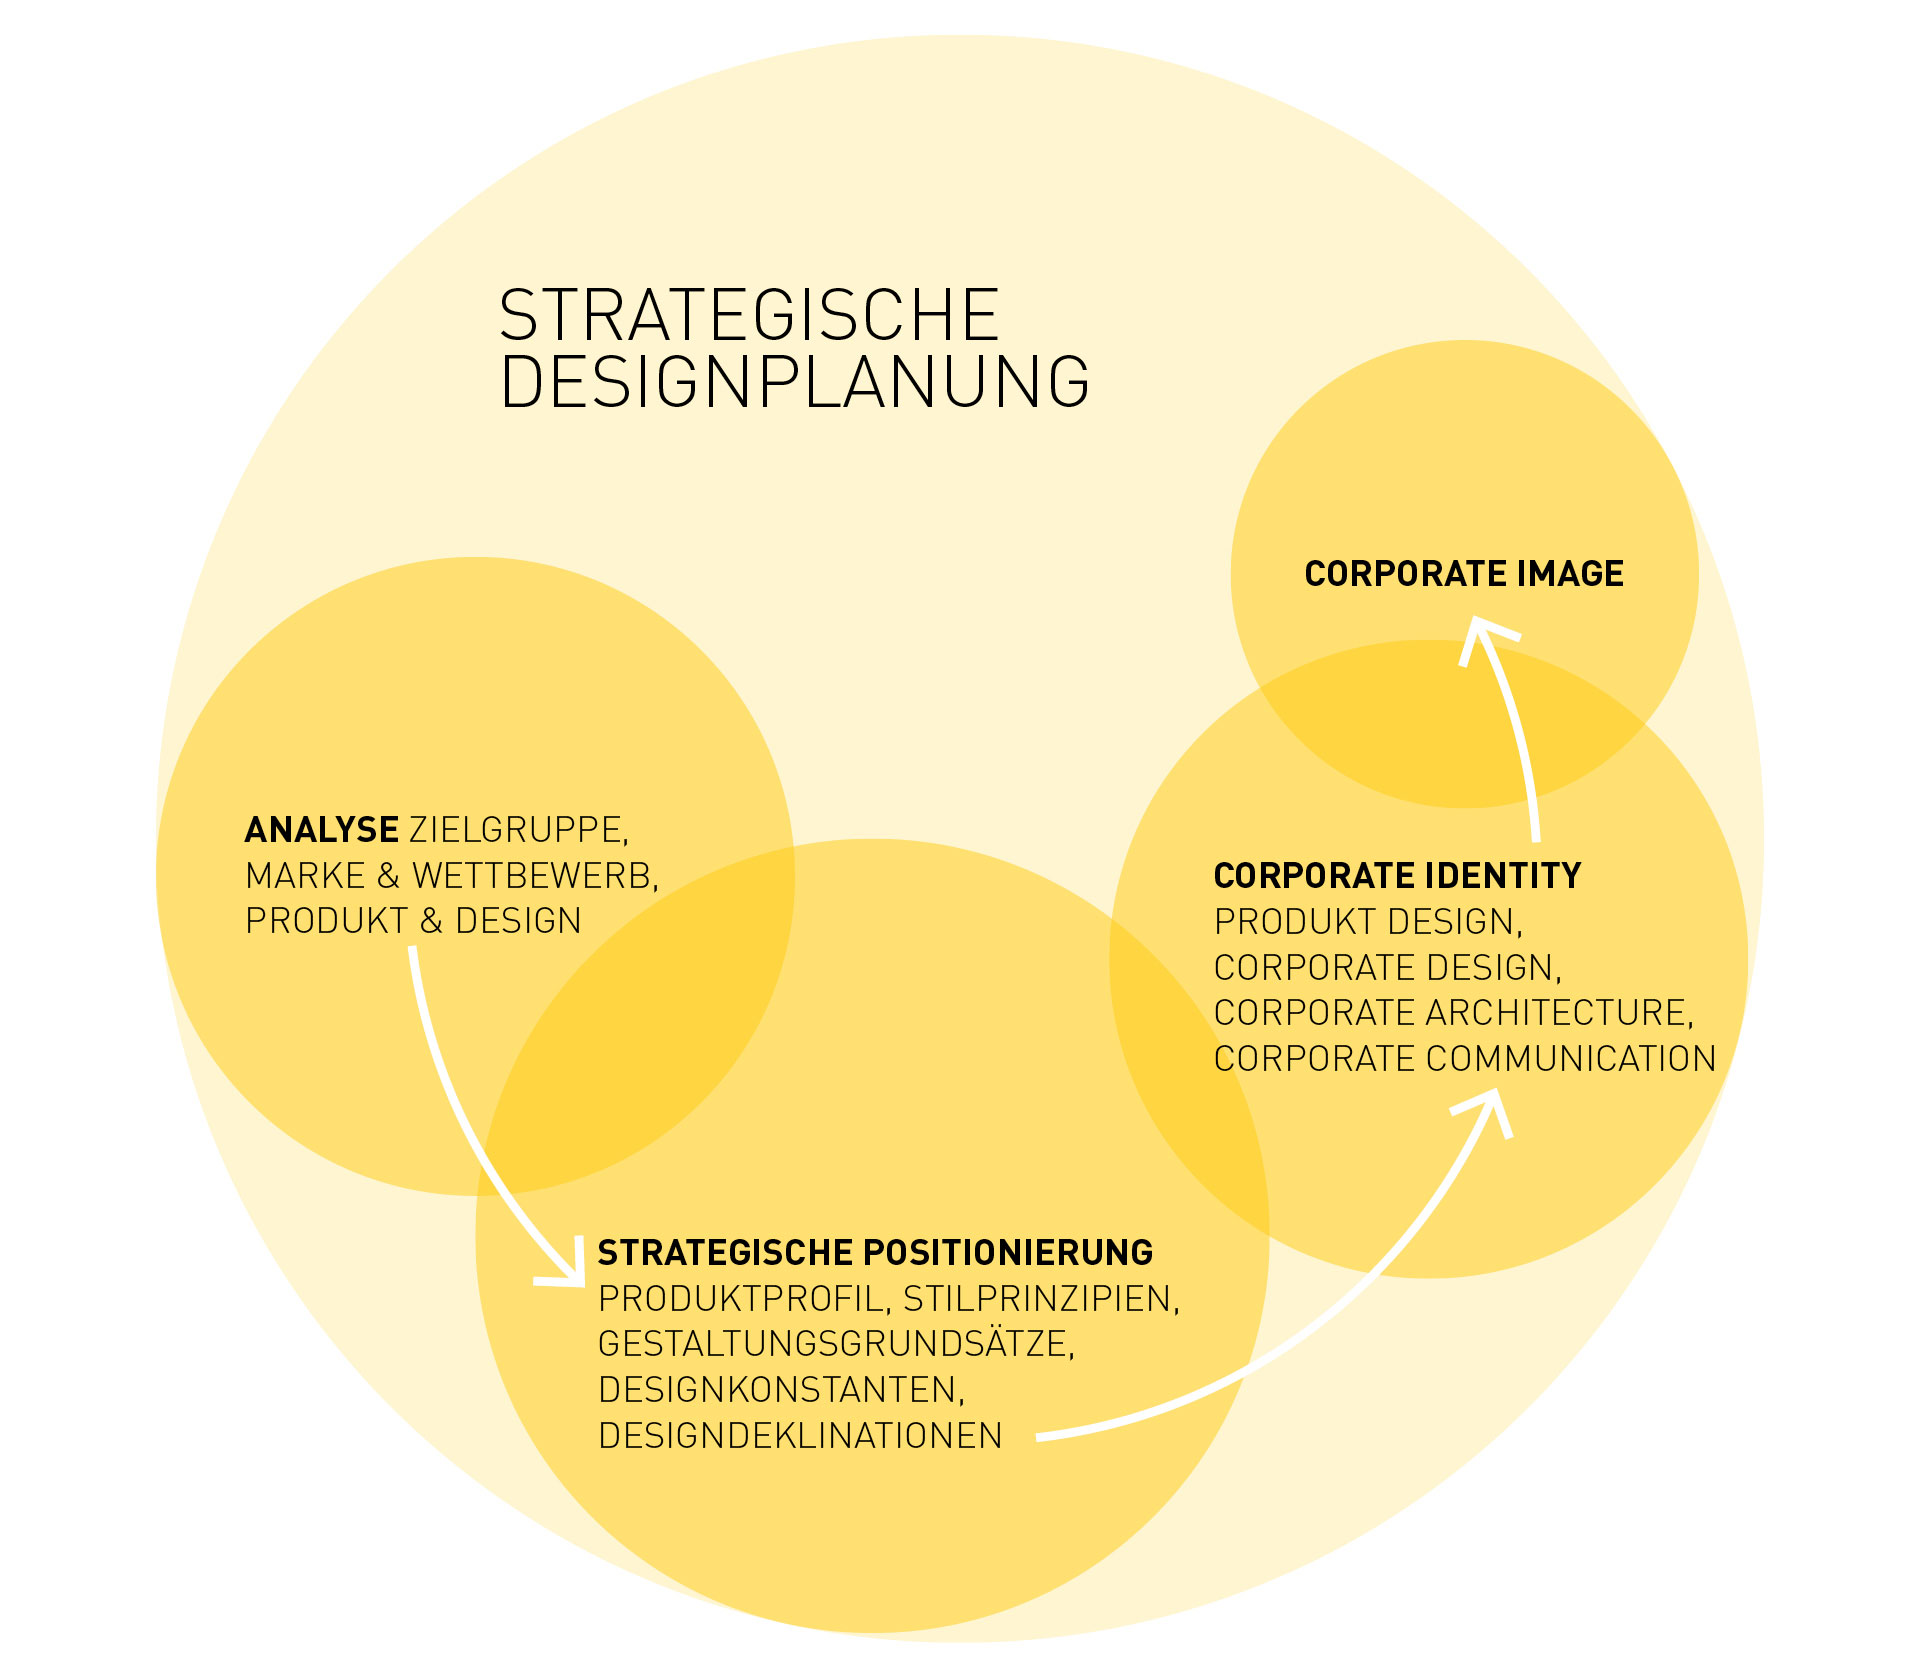 homepage_yellow_strategie.jpg